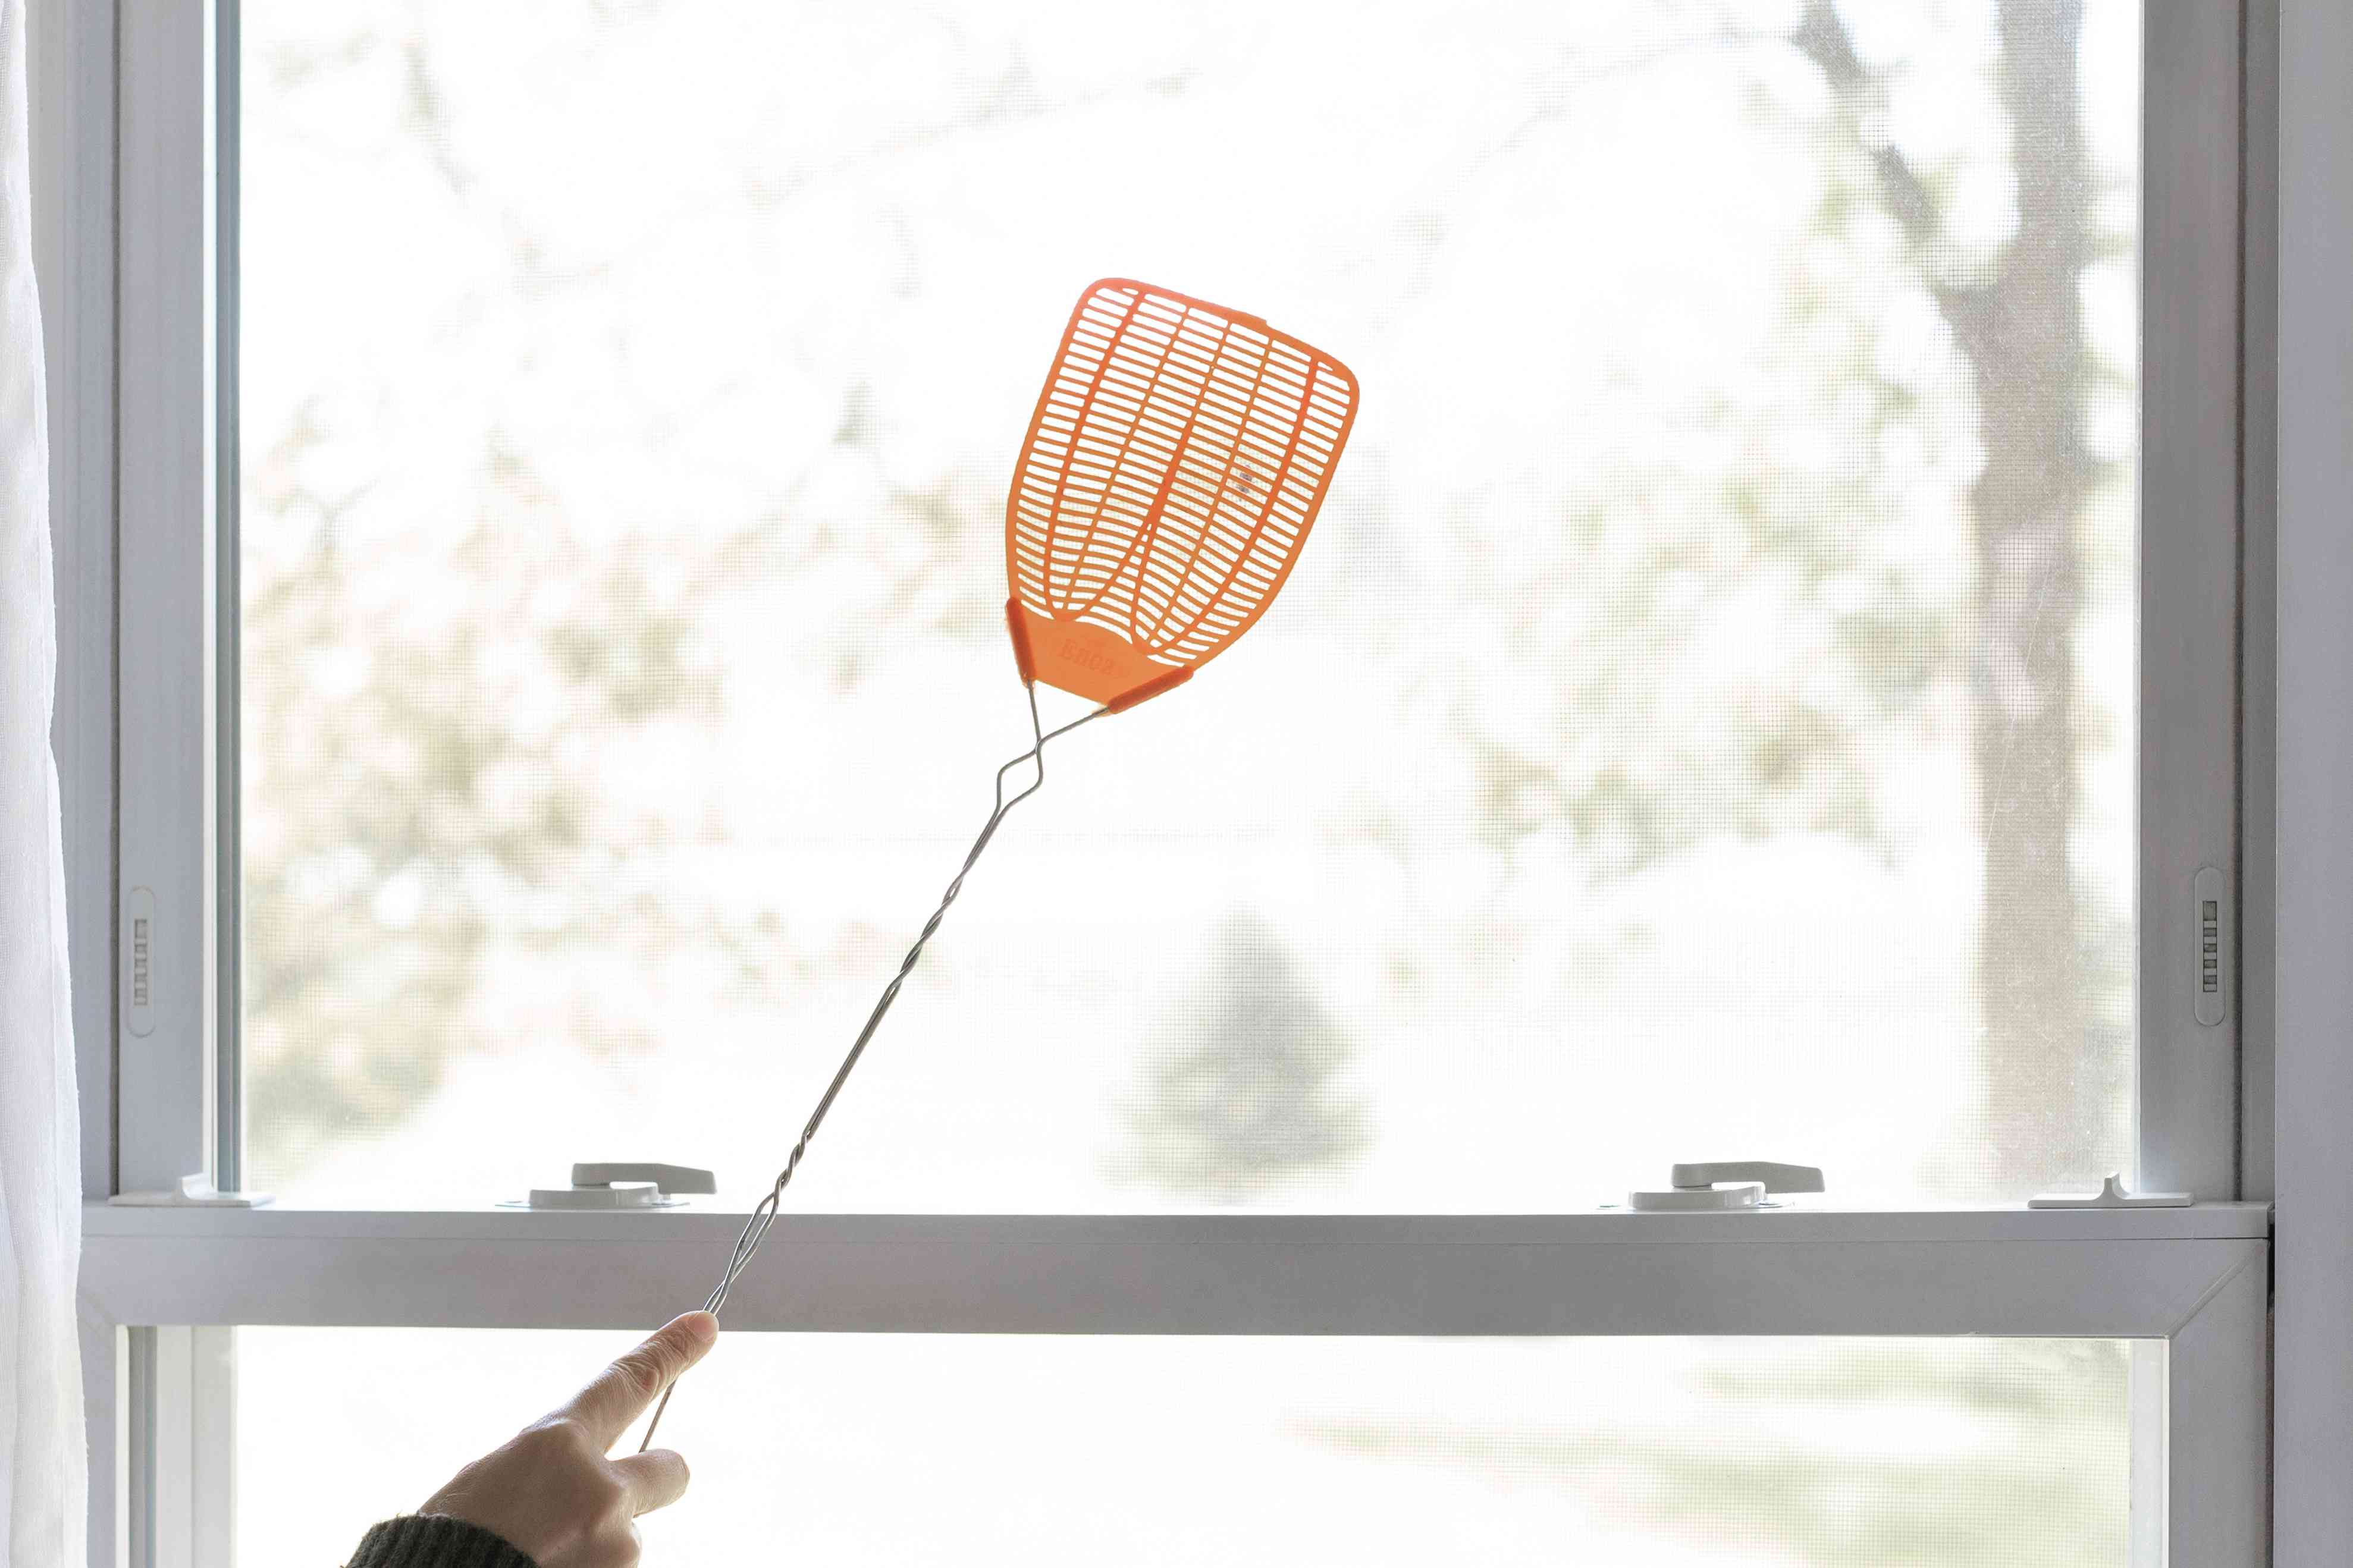 Cluster fly on window being swatted with orange swatter